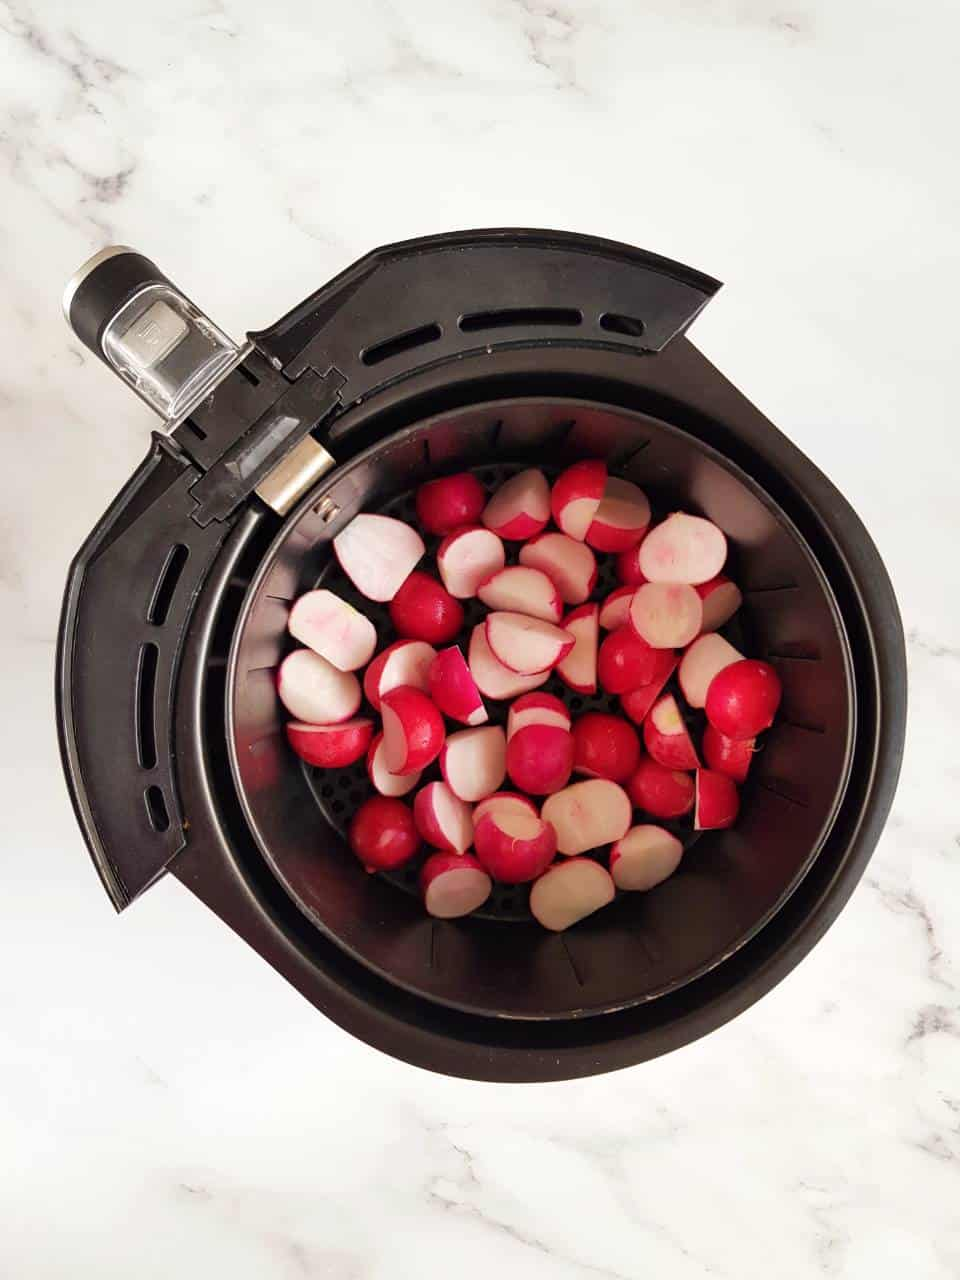 Radishes in an air fryer.